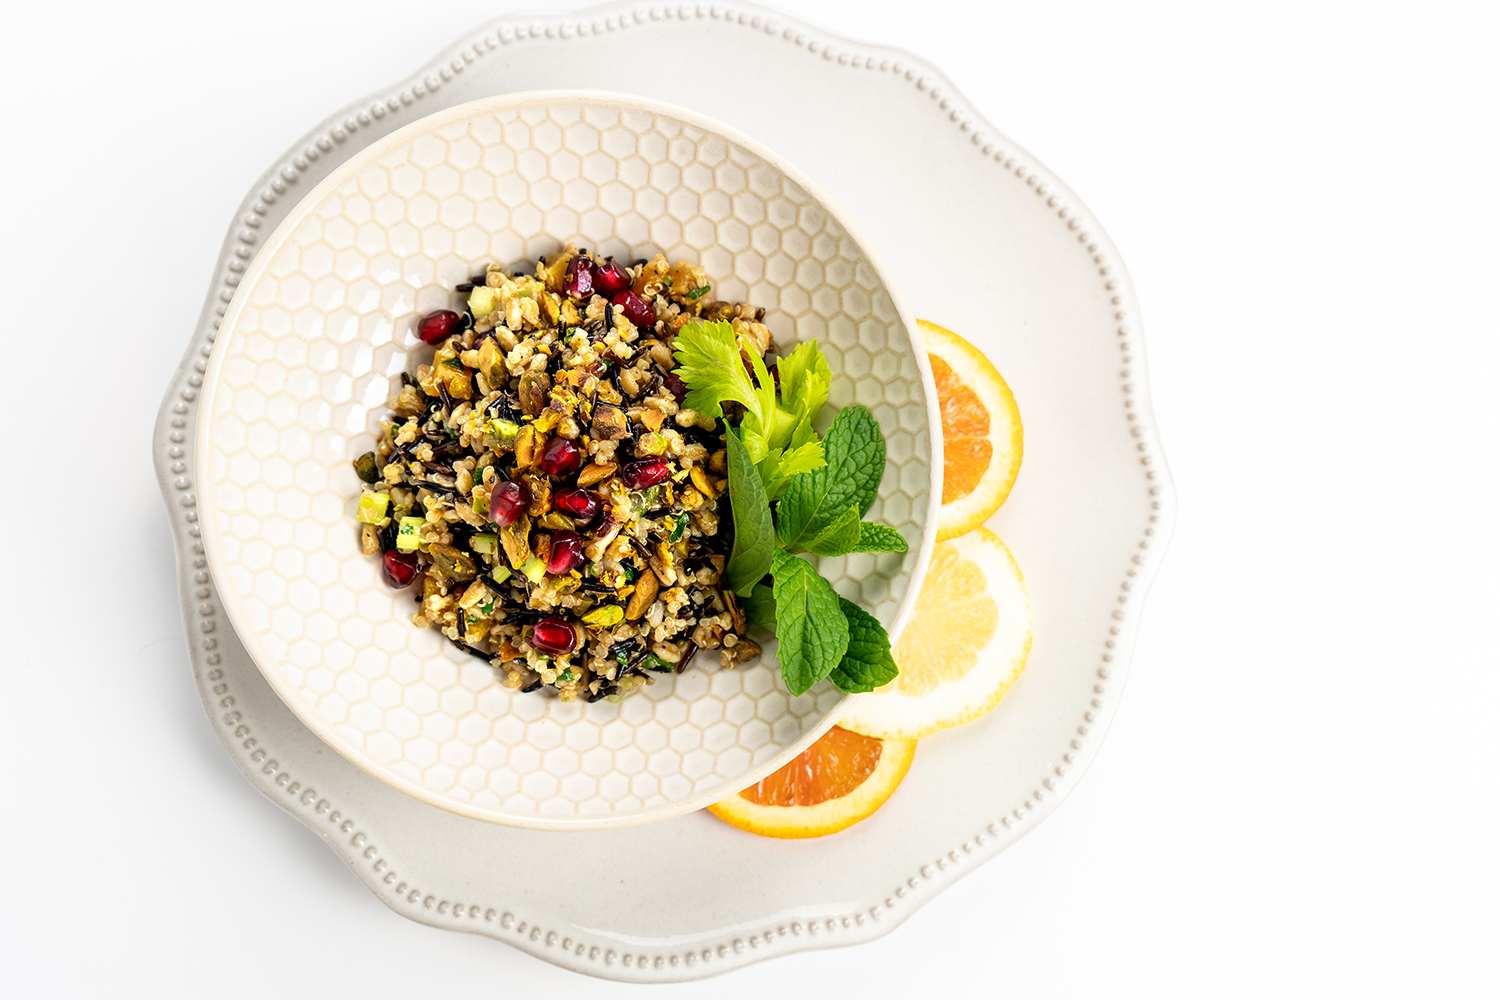 Ancient-Grains-Salad.jpg